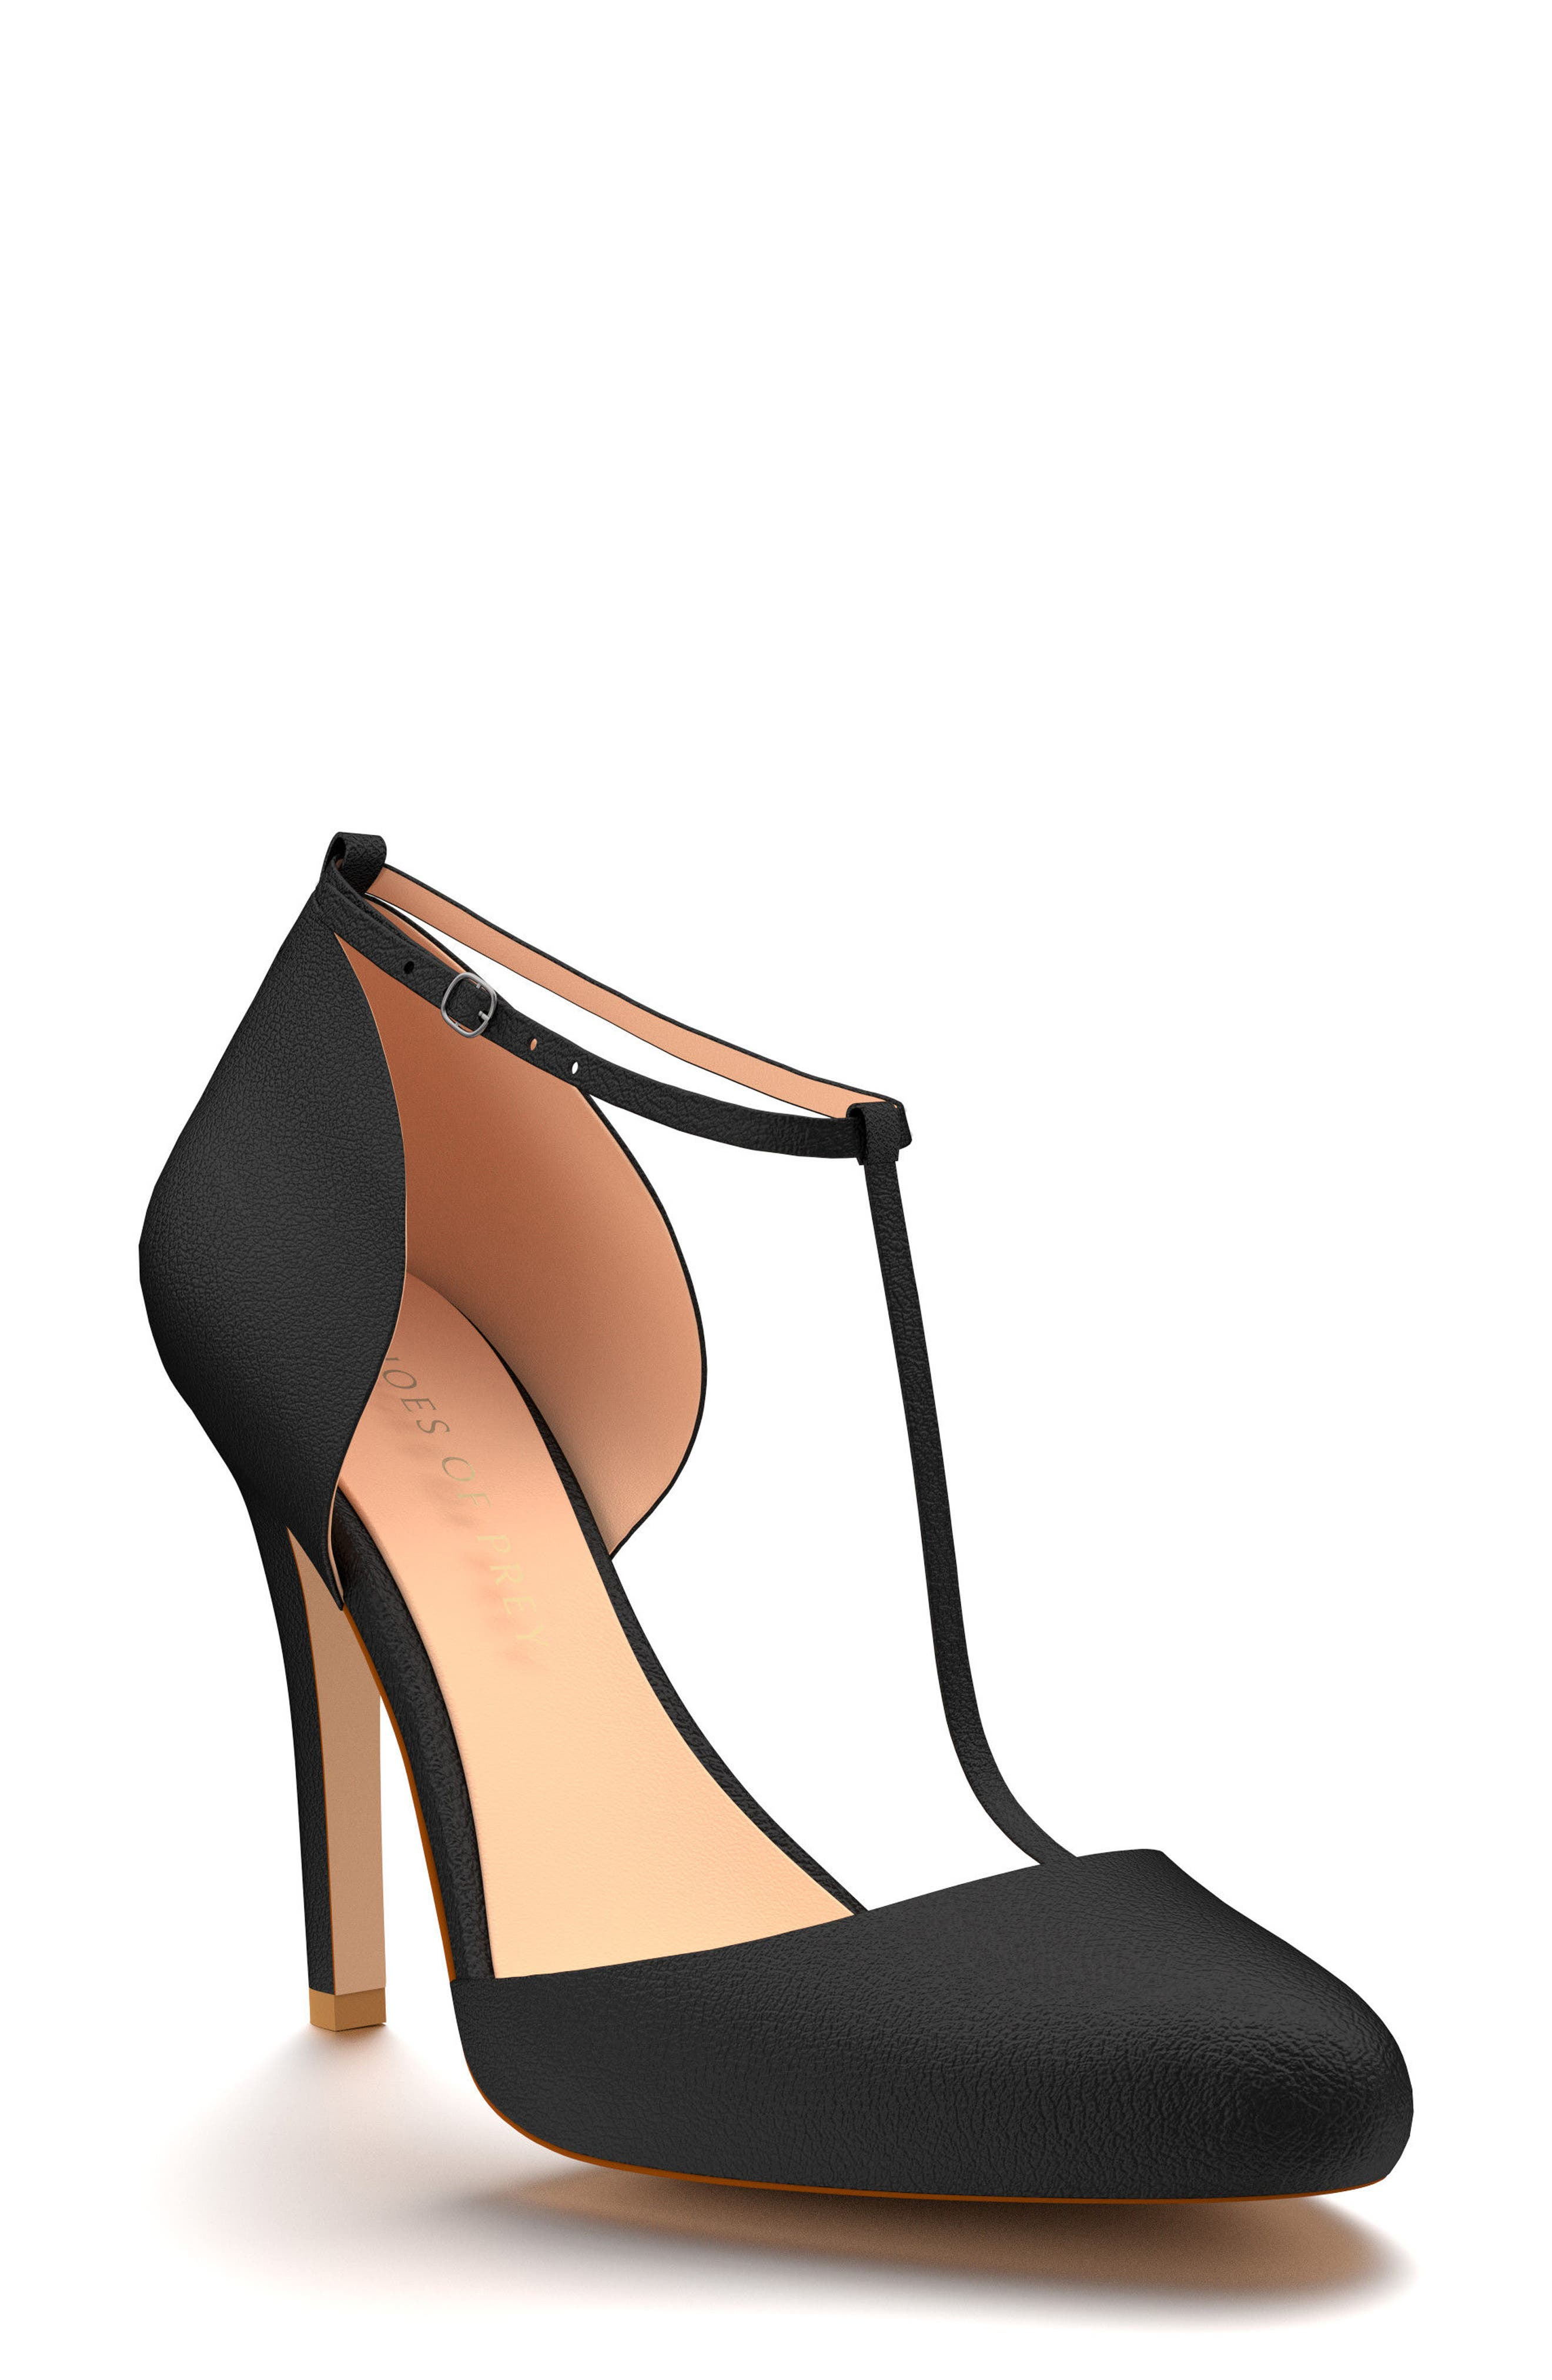 Main Image - Shoes of Prey T-Strap Pump (Women)